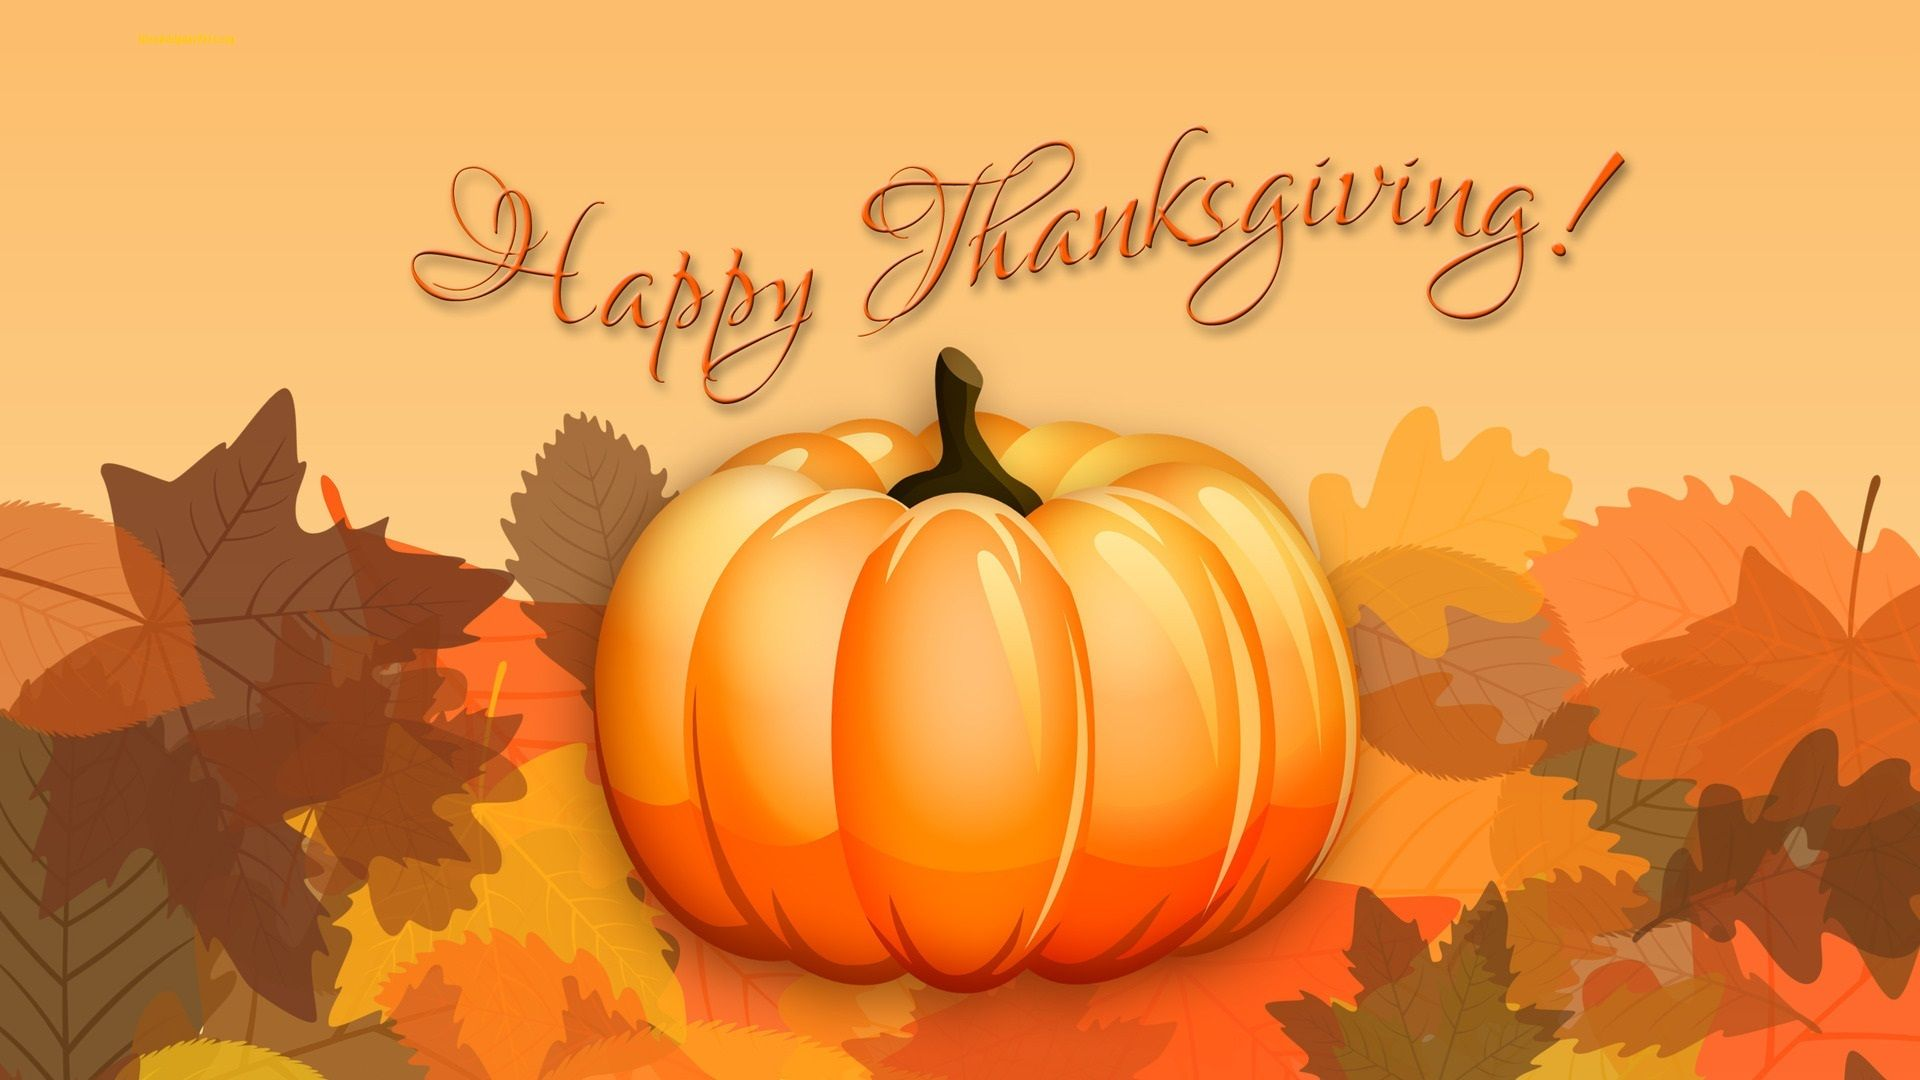 Happy Thanksgiving Images 2019 Thanksgiving Day Pictures Photos Pics Wallpap Happy Thanksgiving Wallpaper Free Thanksgiving Wallpaper Thanksgiving Pictures